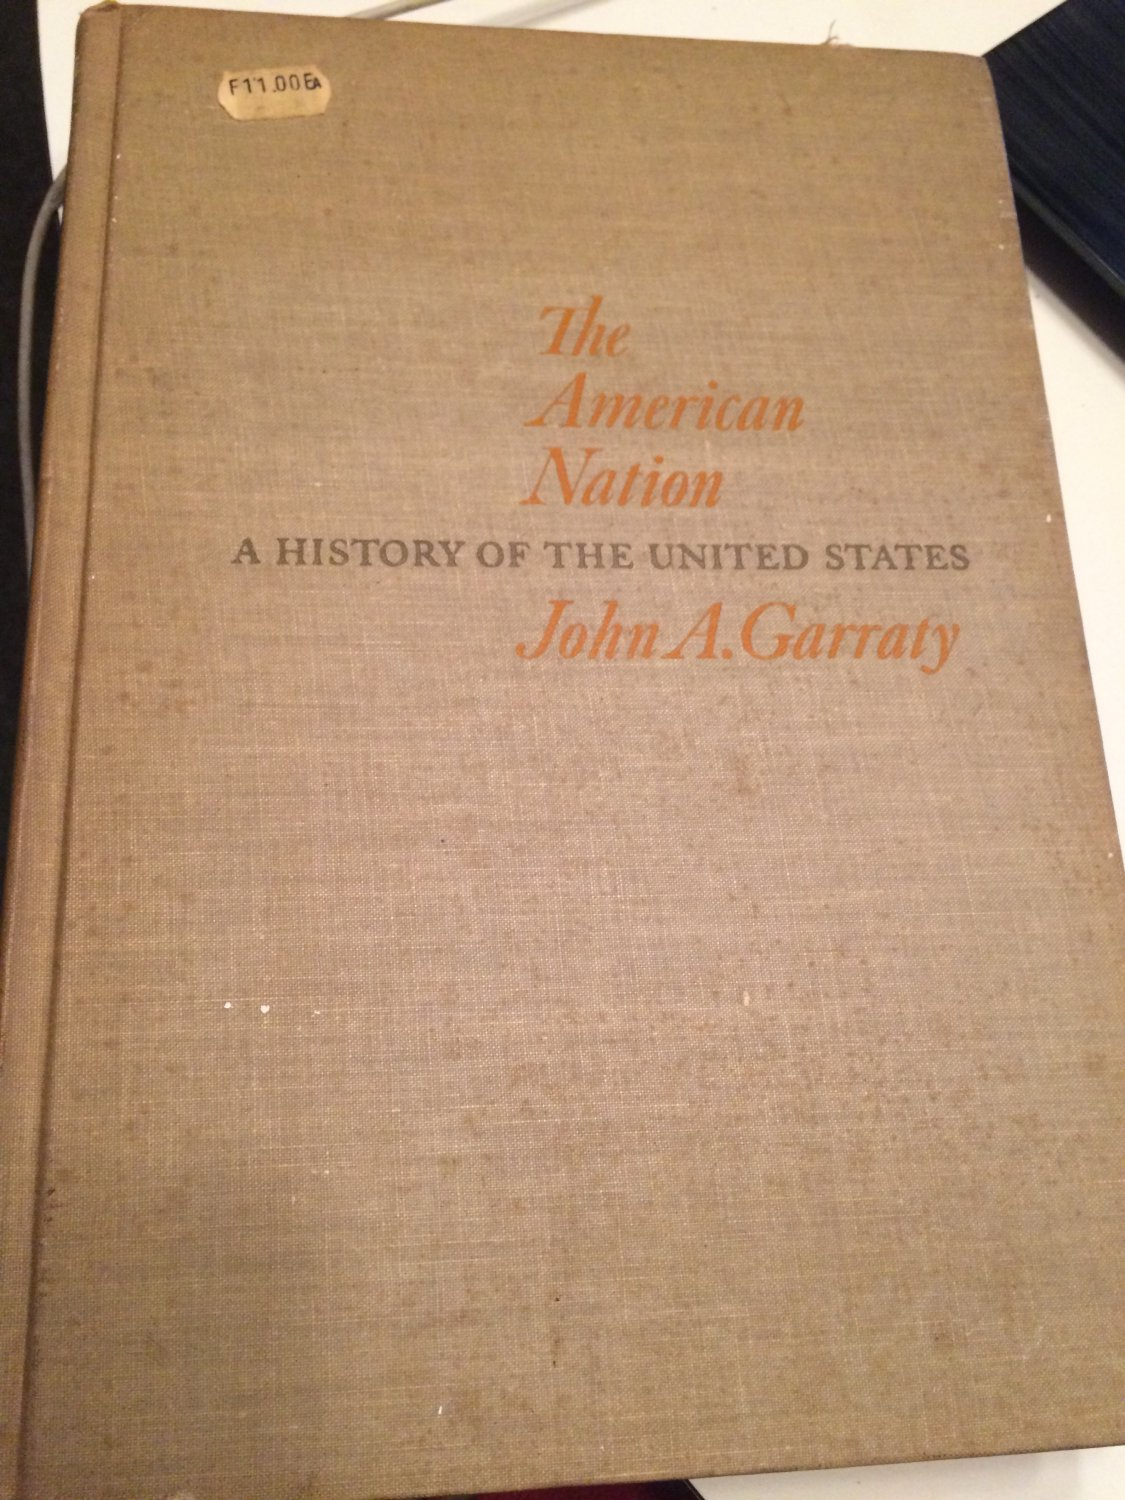 The American Nation to 1877: A History of the United States1966 by John A. Garraty